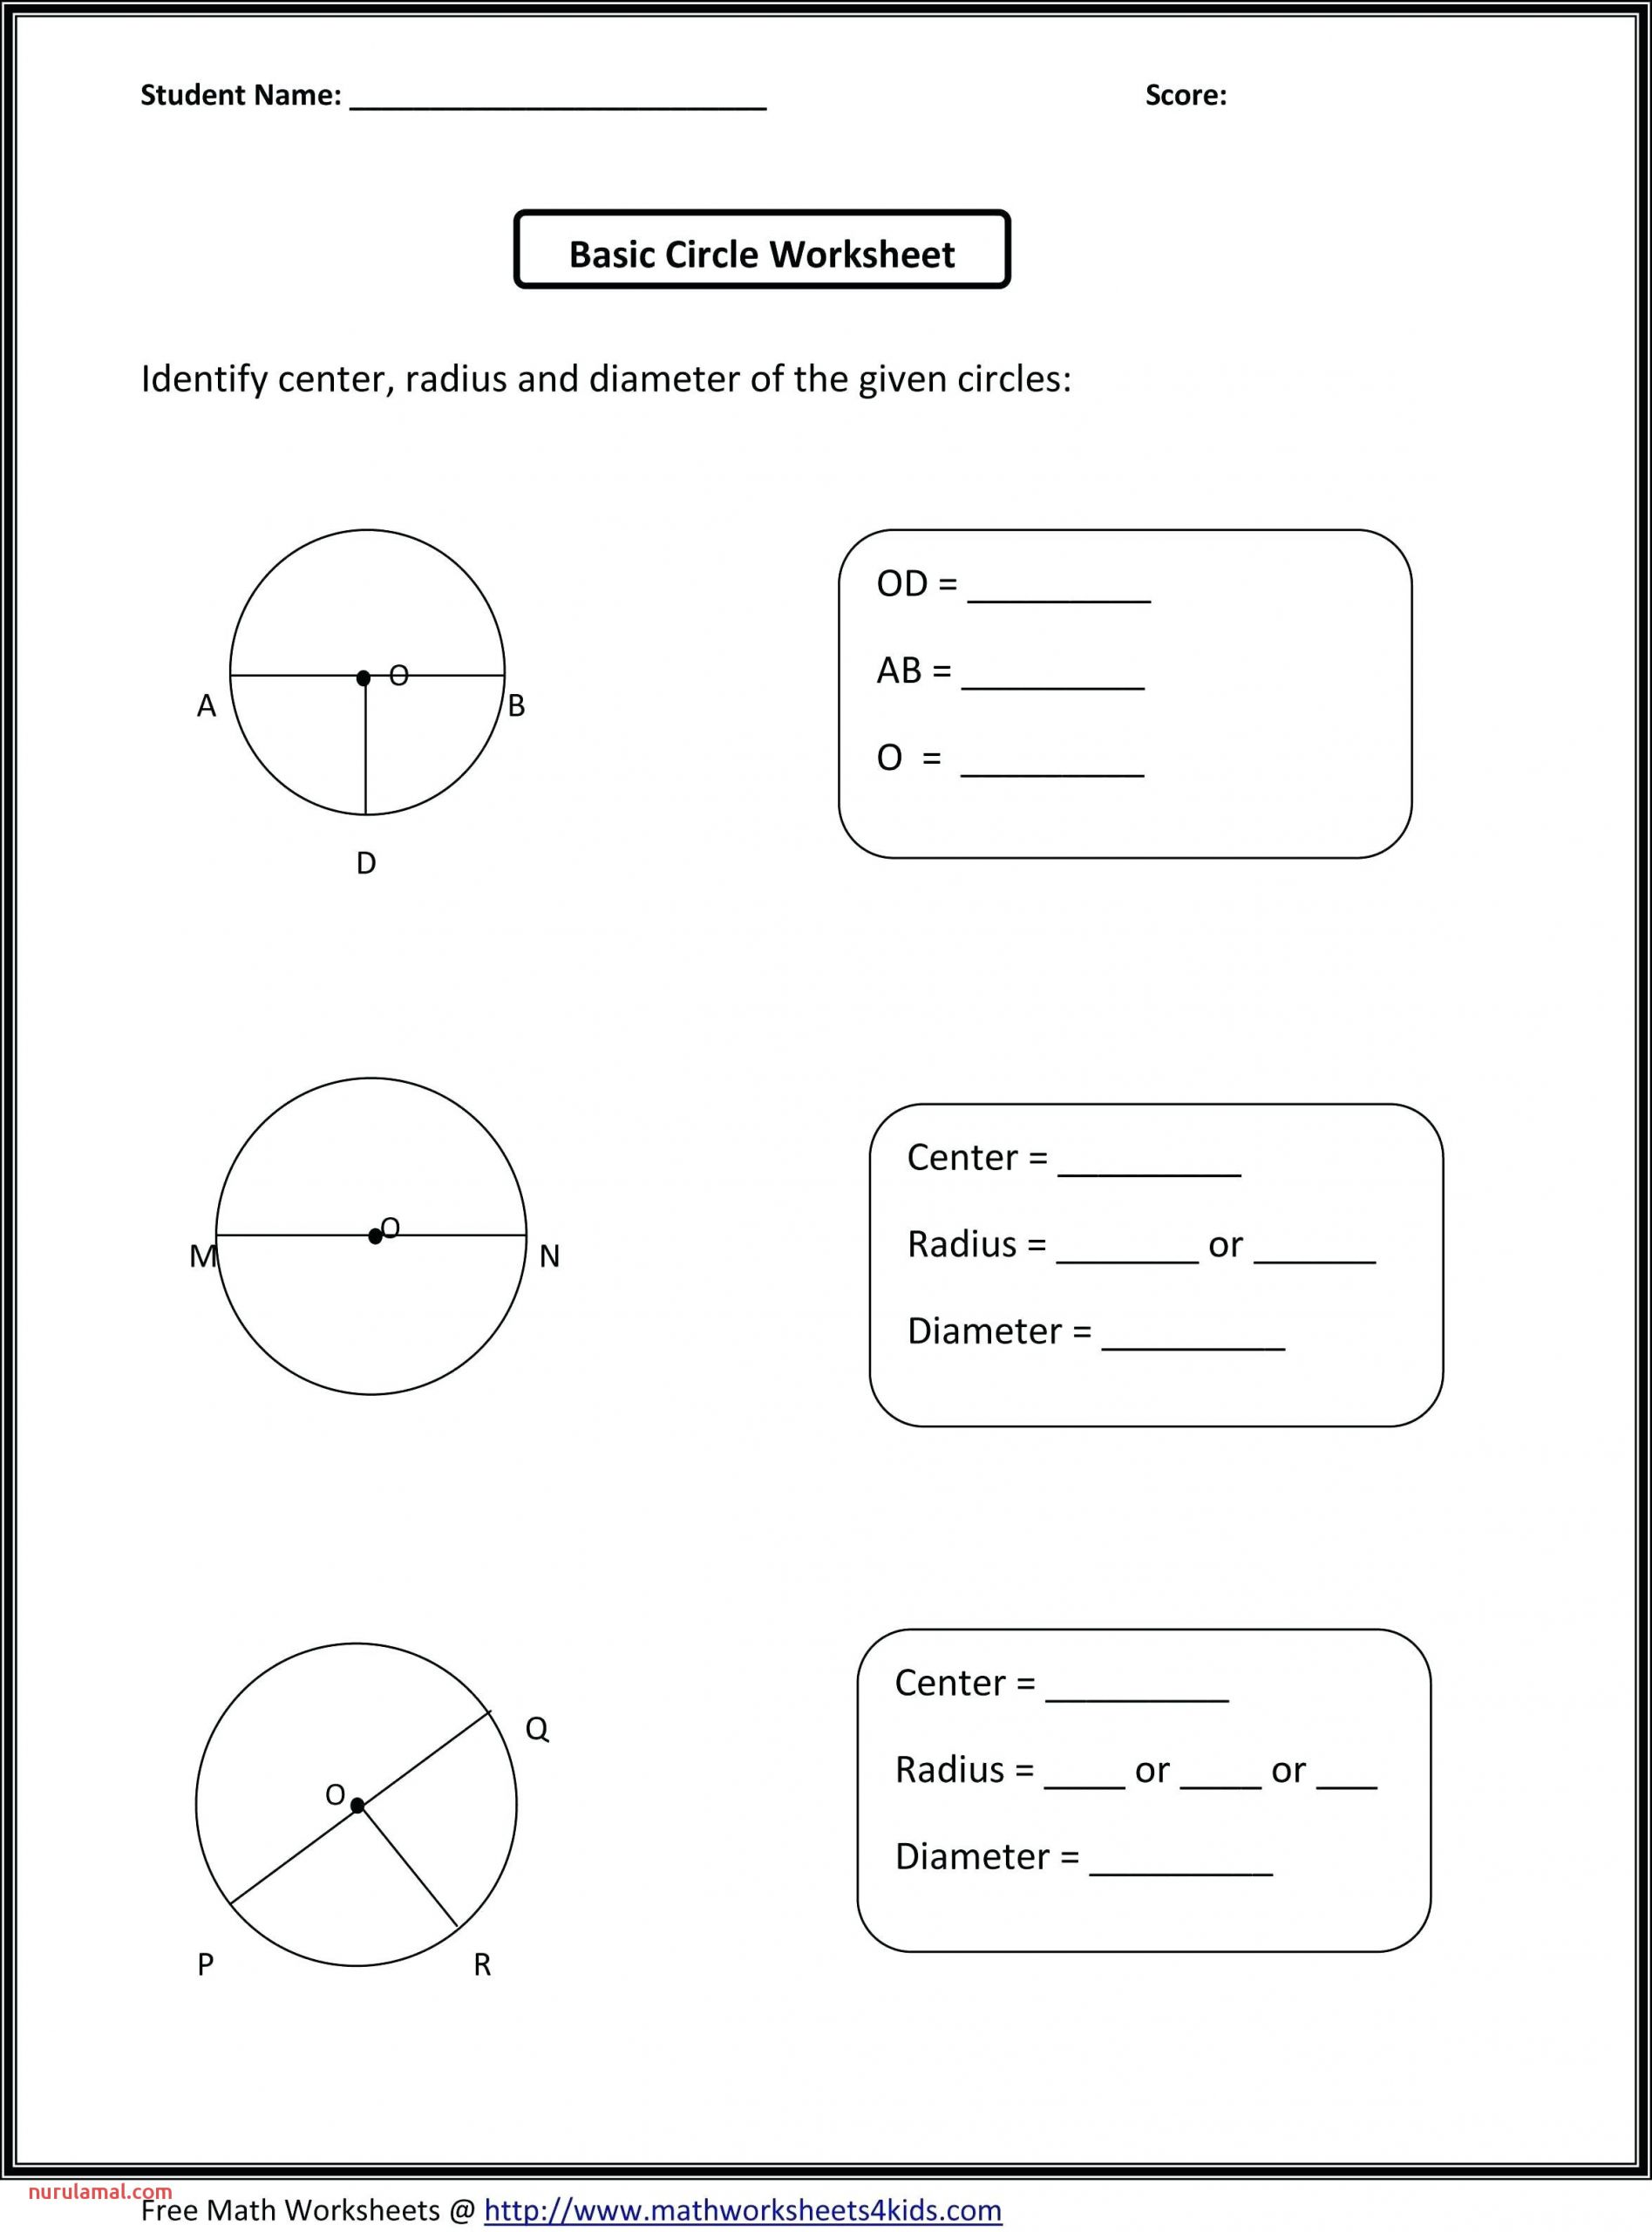 Mon Core Worksheets 5th Grade